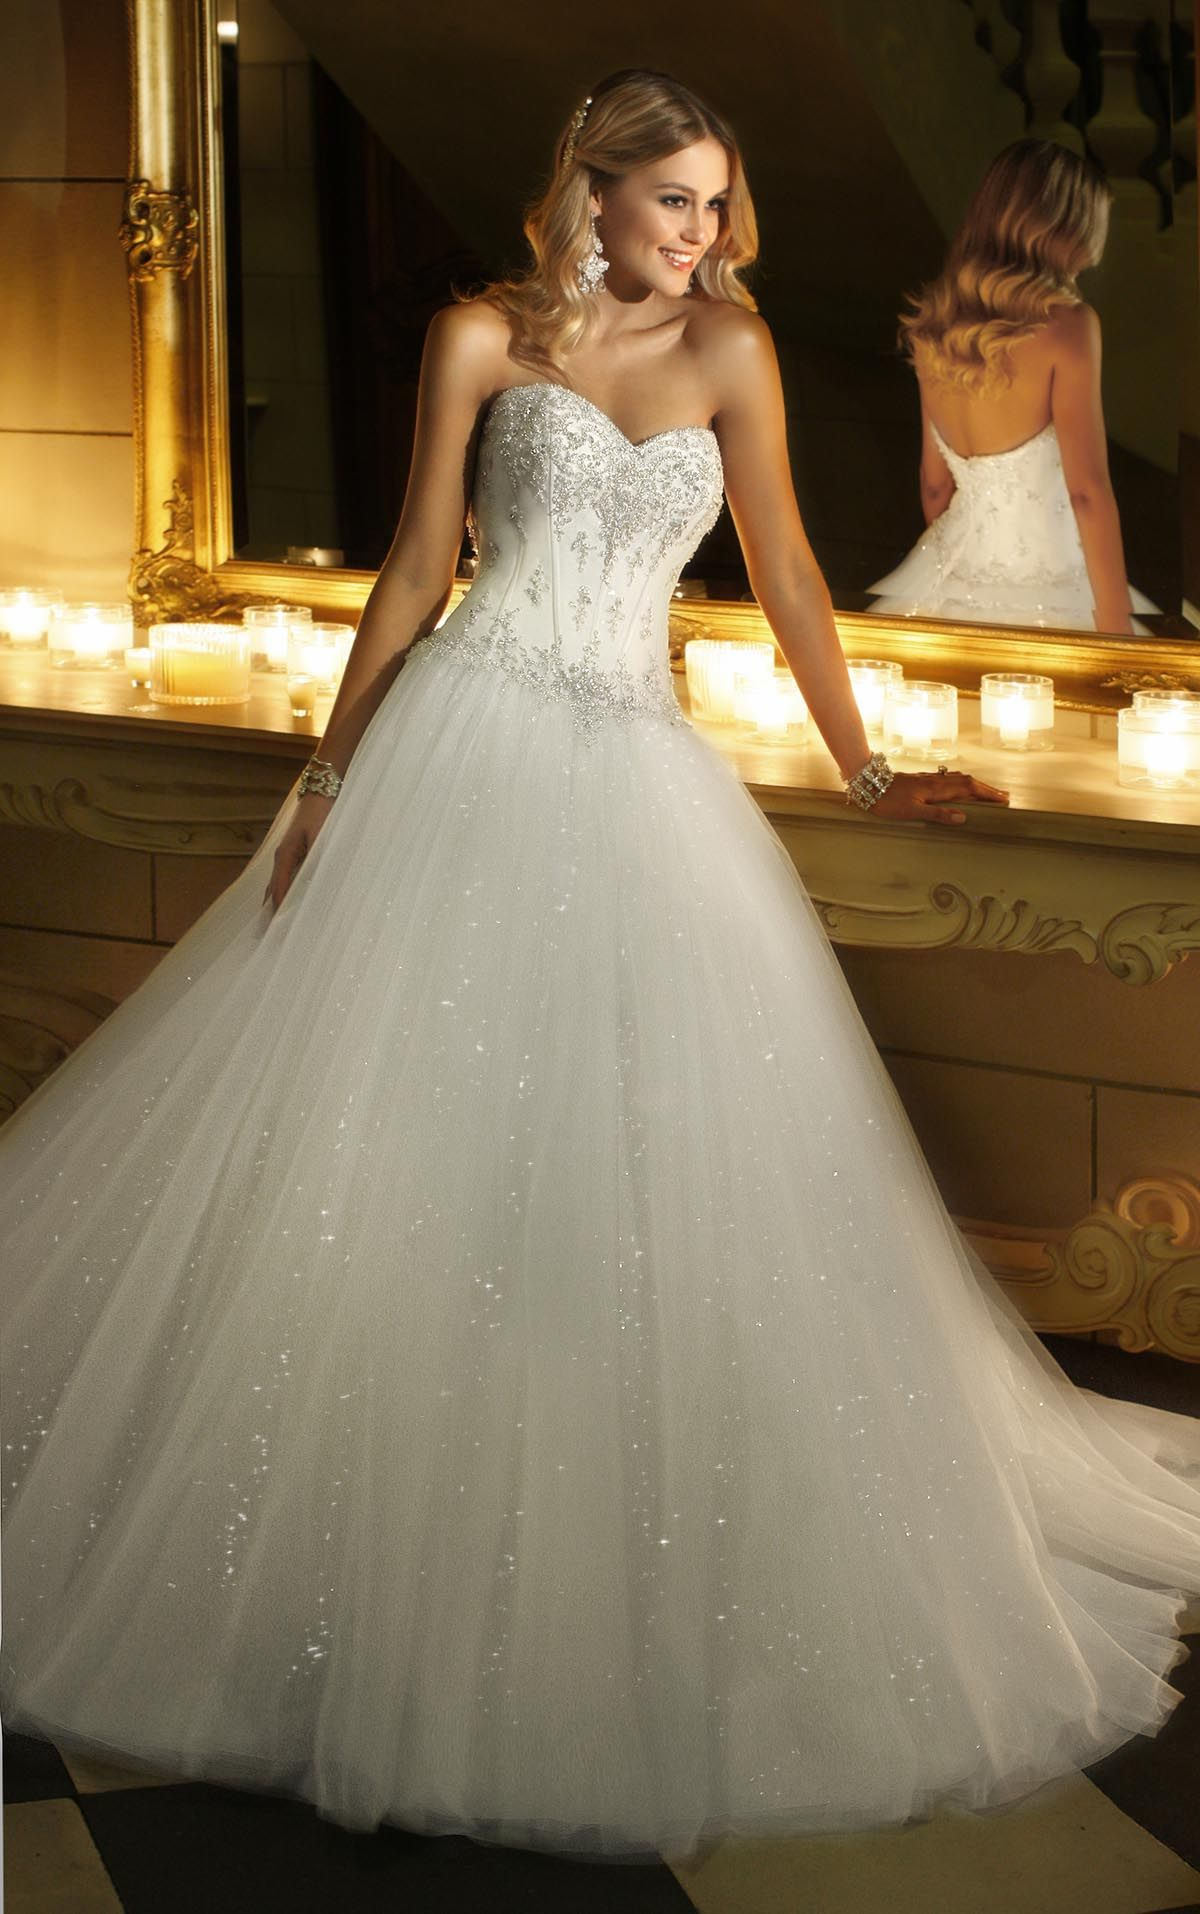 1000  images about Possible wedding dresses on Pinterest | Wedding ...